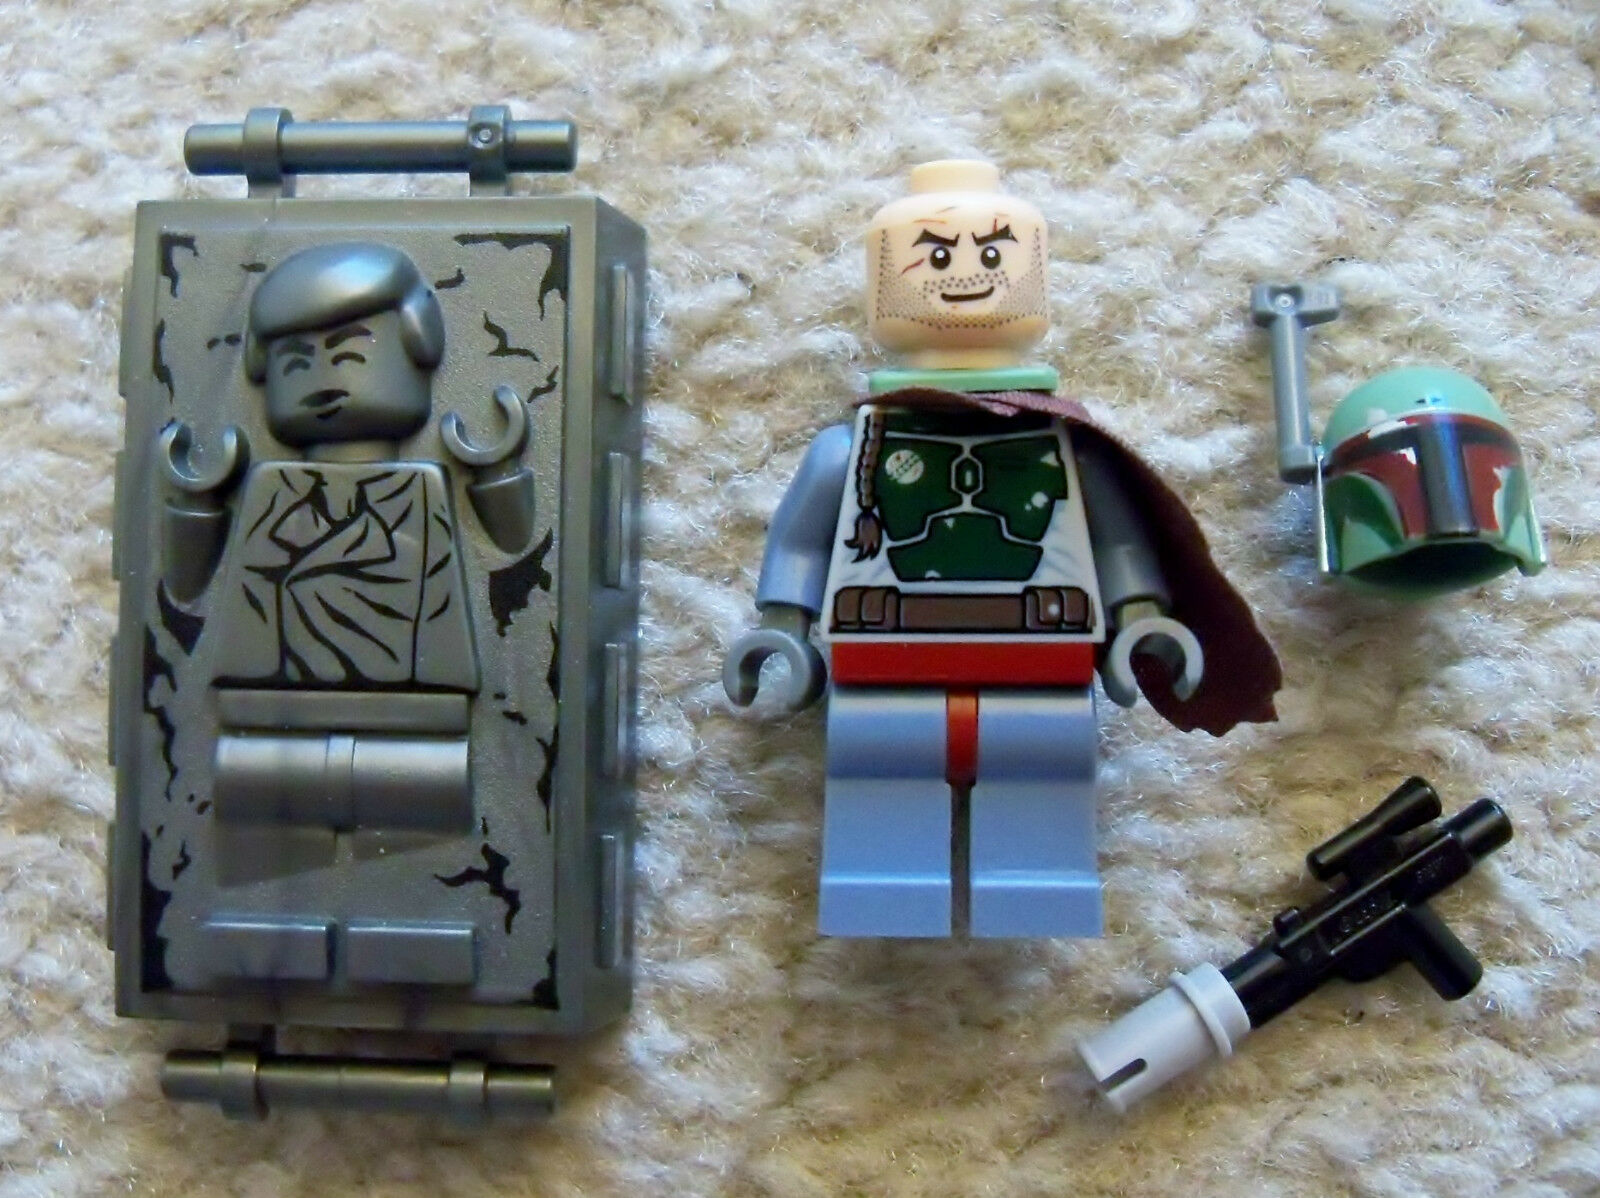 LEGO - Star Wars - Rare - Boba Fett & Solo In Carbonite - Excellent - From 8097